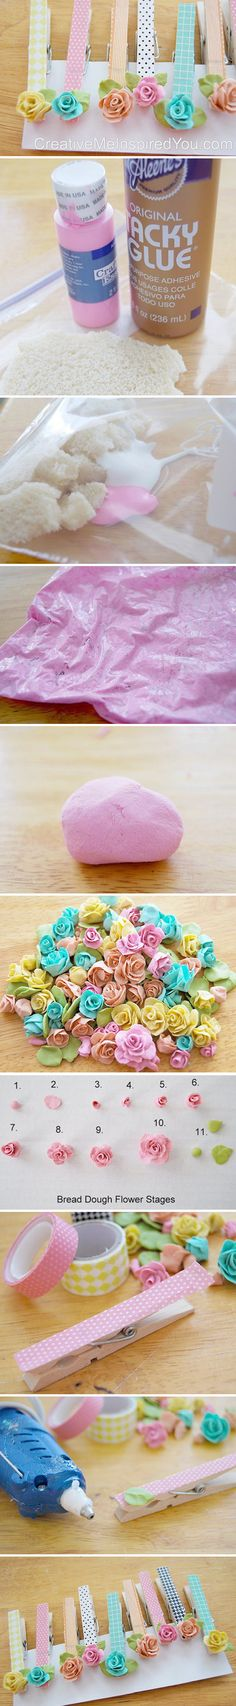 Bread Dough Roses - my sister use to make these.Diy - Handmade - gift - Amazing - Beautiful idea!!!!! to do!!!!!!